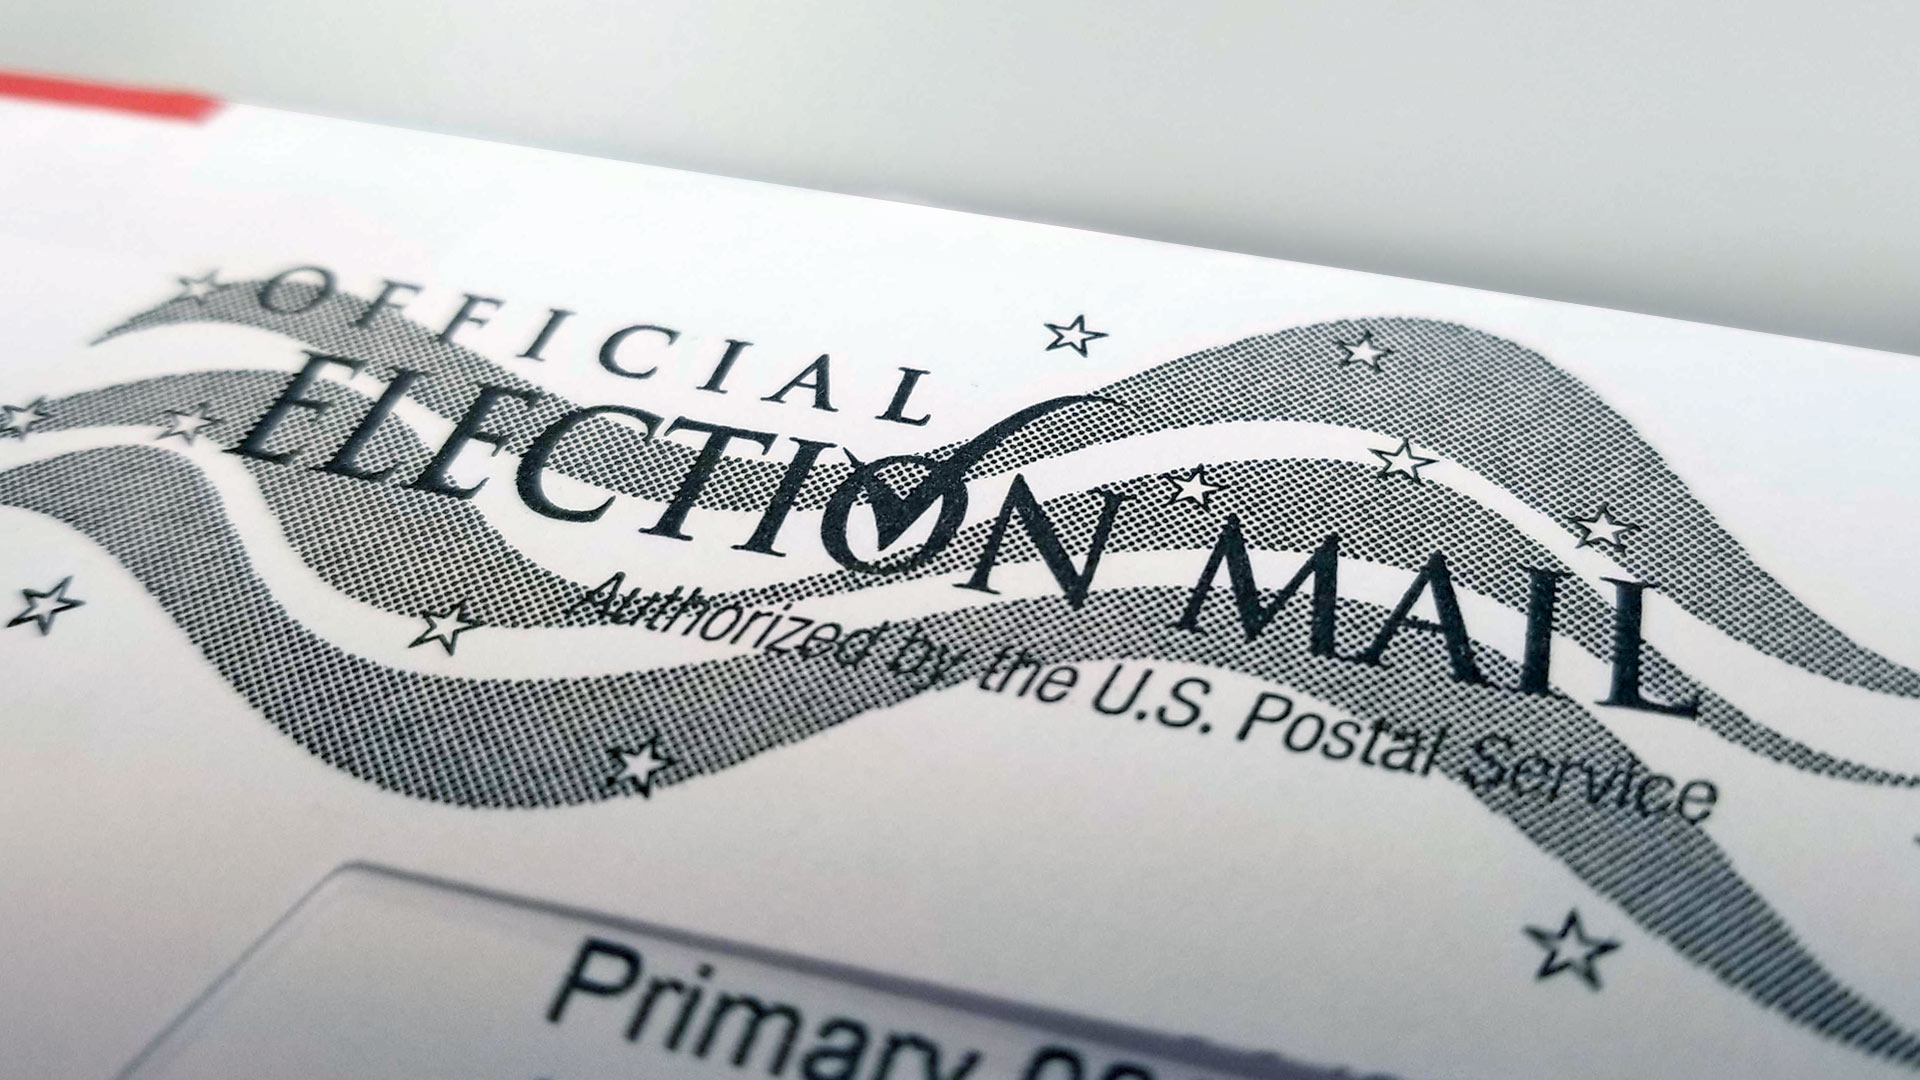 An envelope containing a ballot for an Aug. 27, 2019 primary election in the city of Tucson.